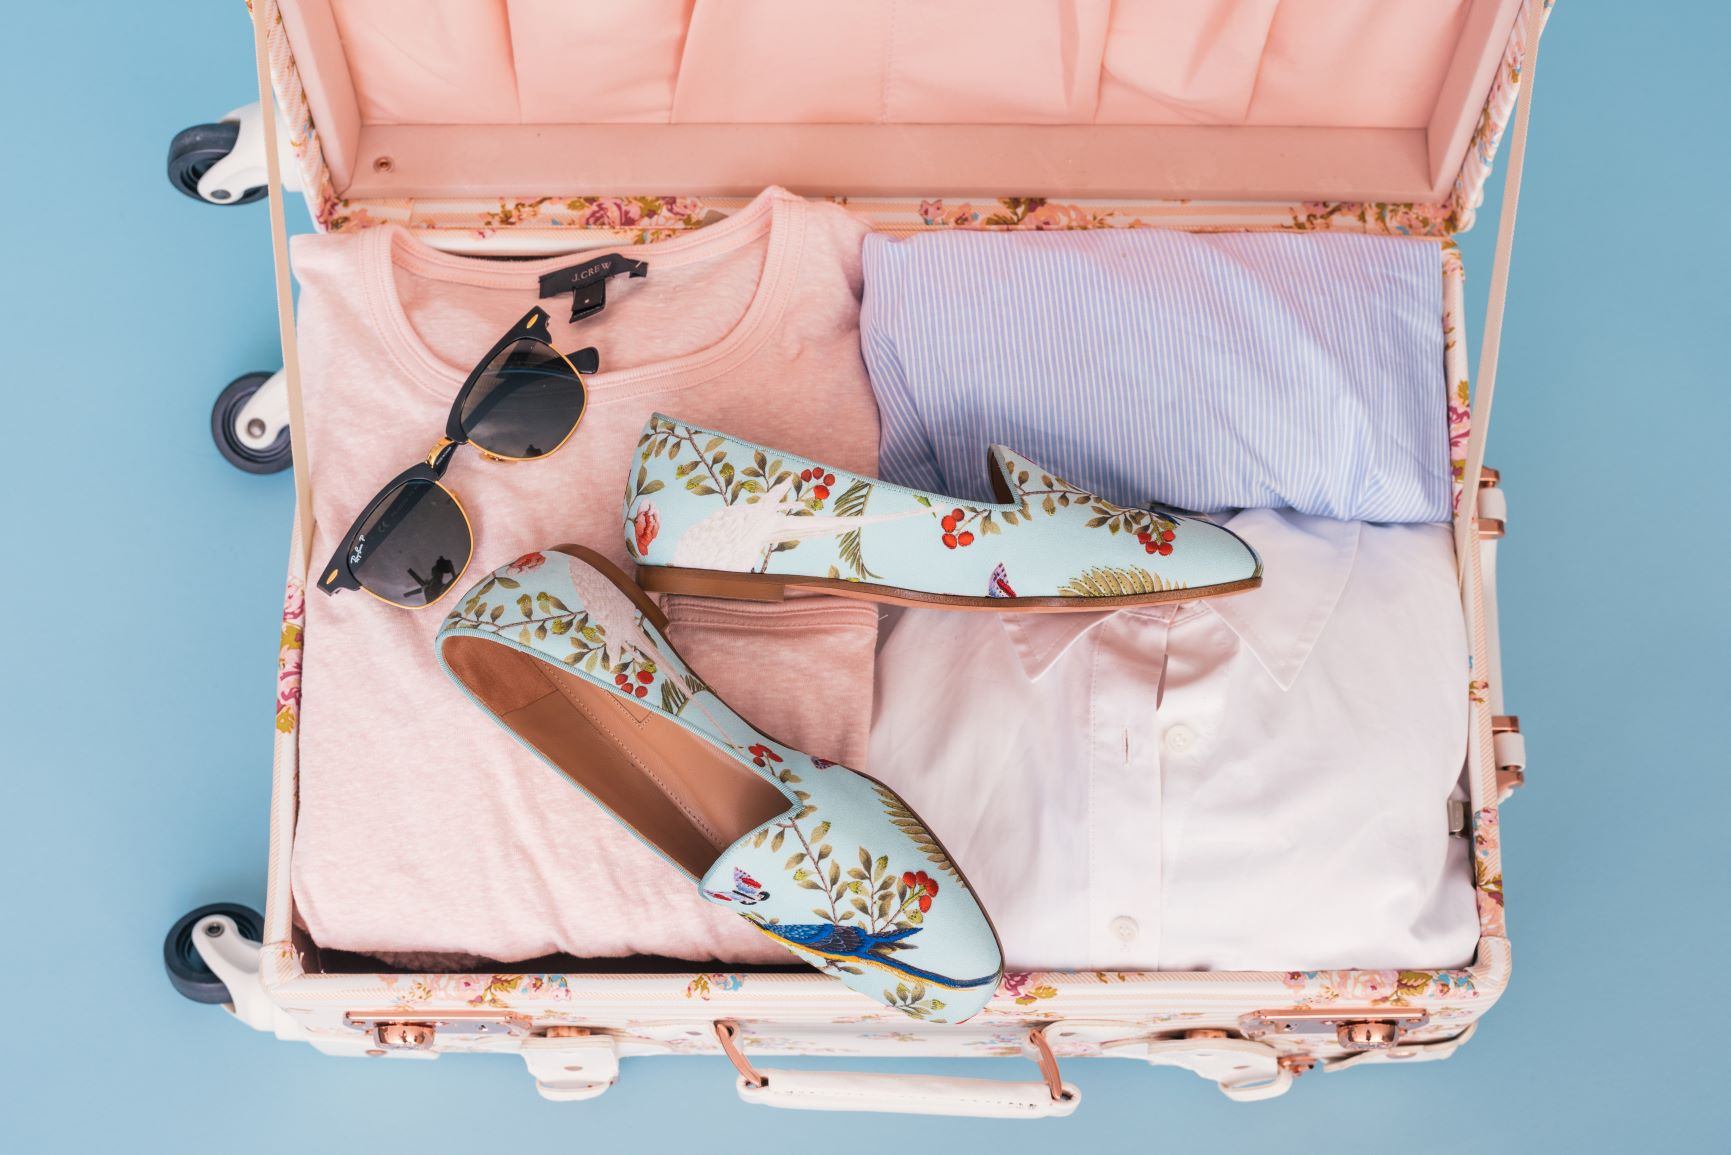 Packing Tips to Help You Travel Lighter